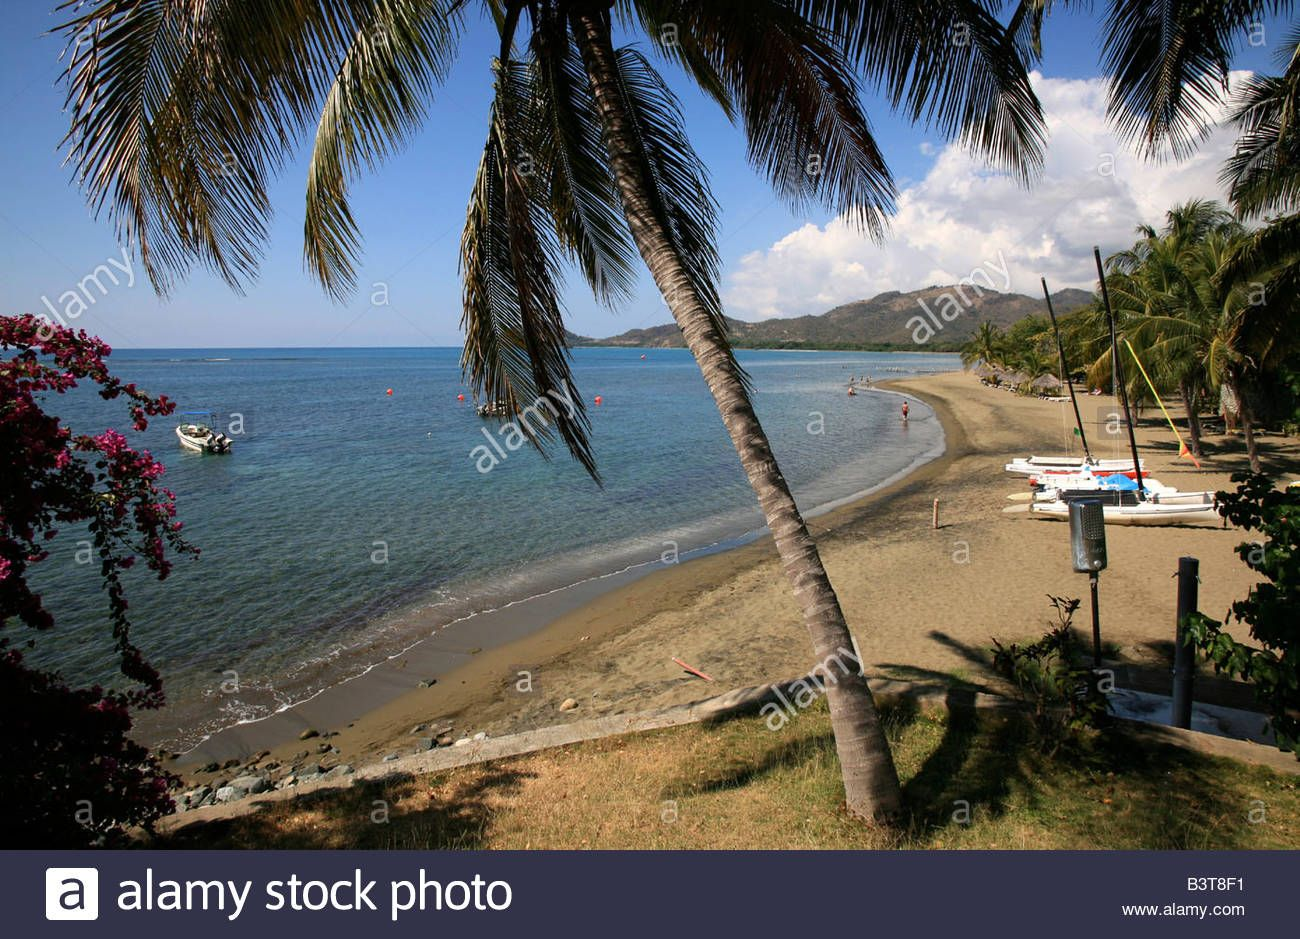 Download this stock image: Beach, Brisas Sierra Mar hotel, South Coast, Playa Las Coloradas, Cuba island, West Indies, Central America - B3T8F1 from Alamy's library of millions of high resolution stock photos, illustrations and vectors. #cubaisland